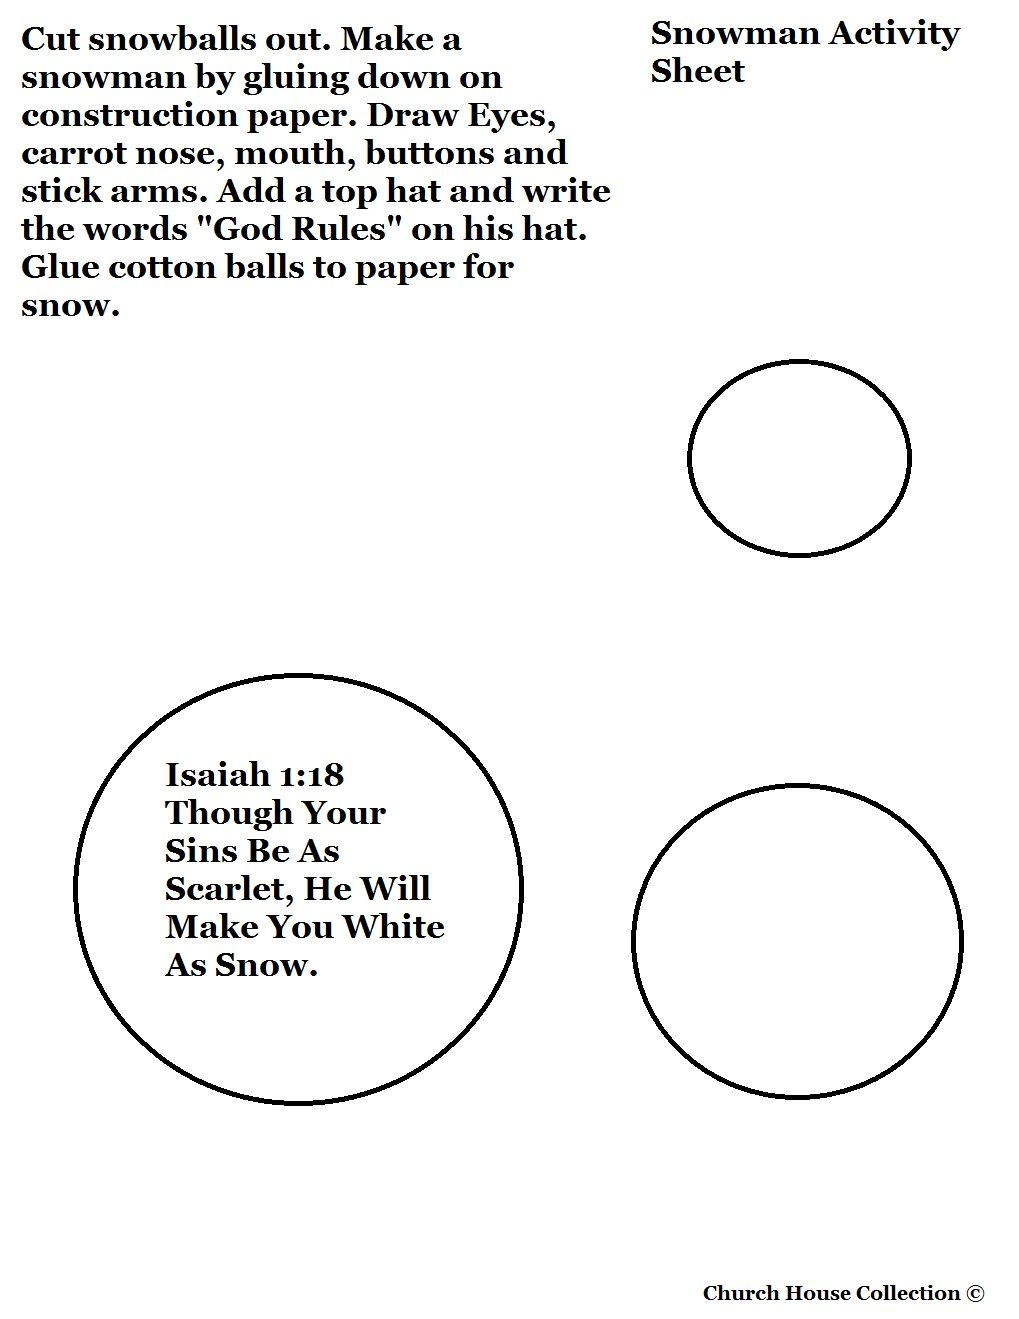 Free Christmas Snowman Cutout Craft For Sunday School Kids By Church